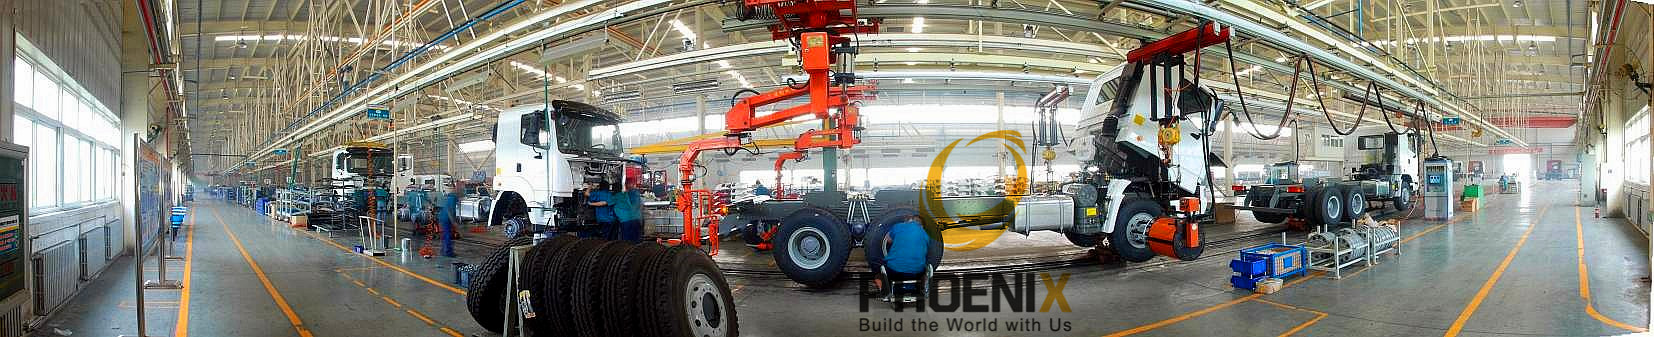 Our HOWO Heavy Duty Truck Manufacturer Robot Automatic Production Line